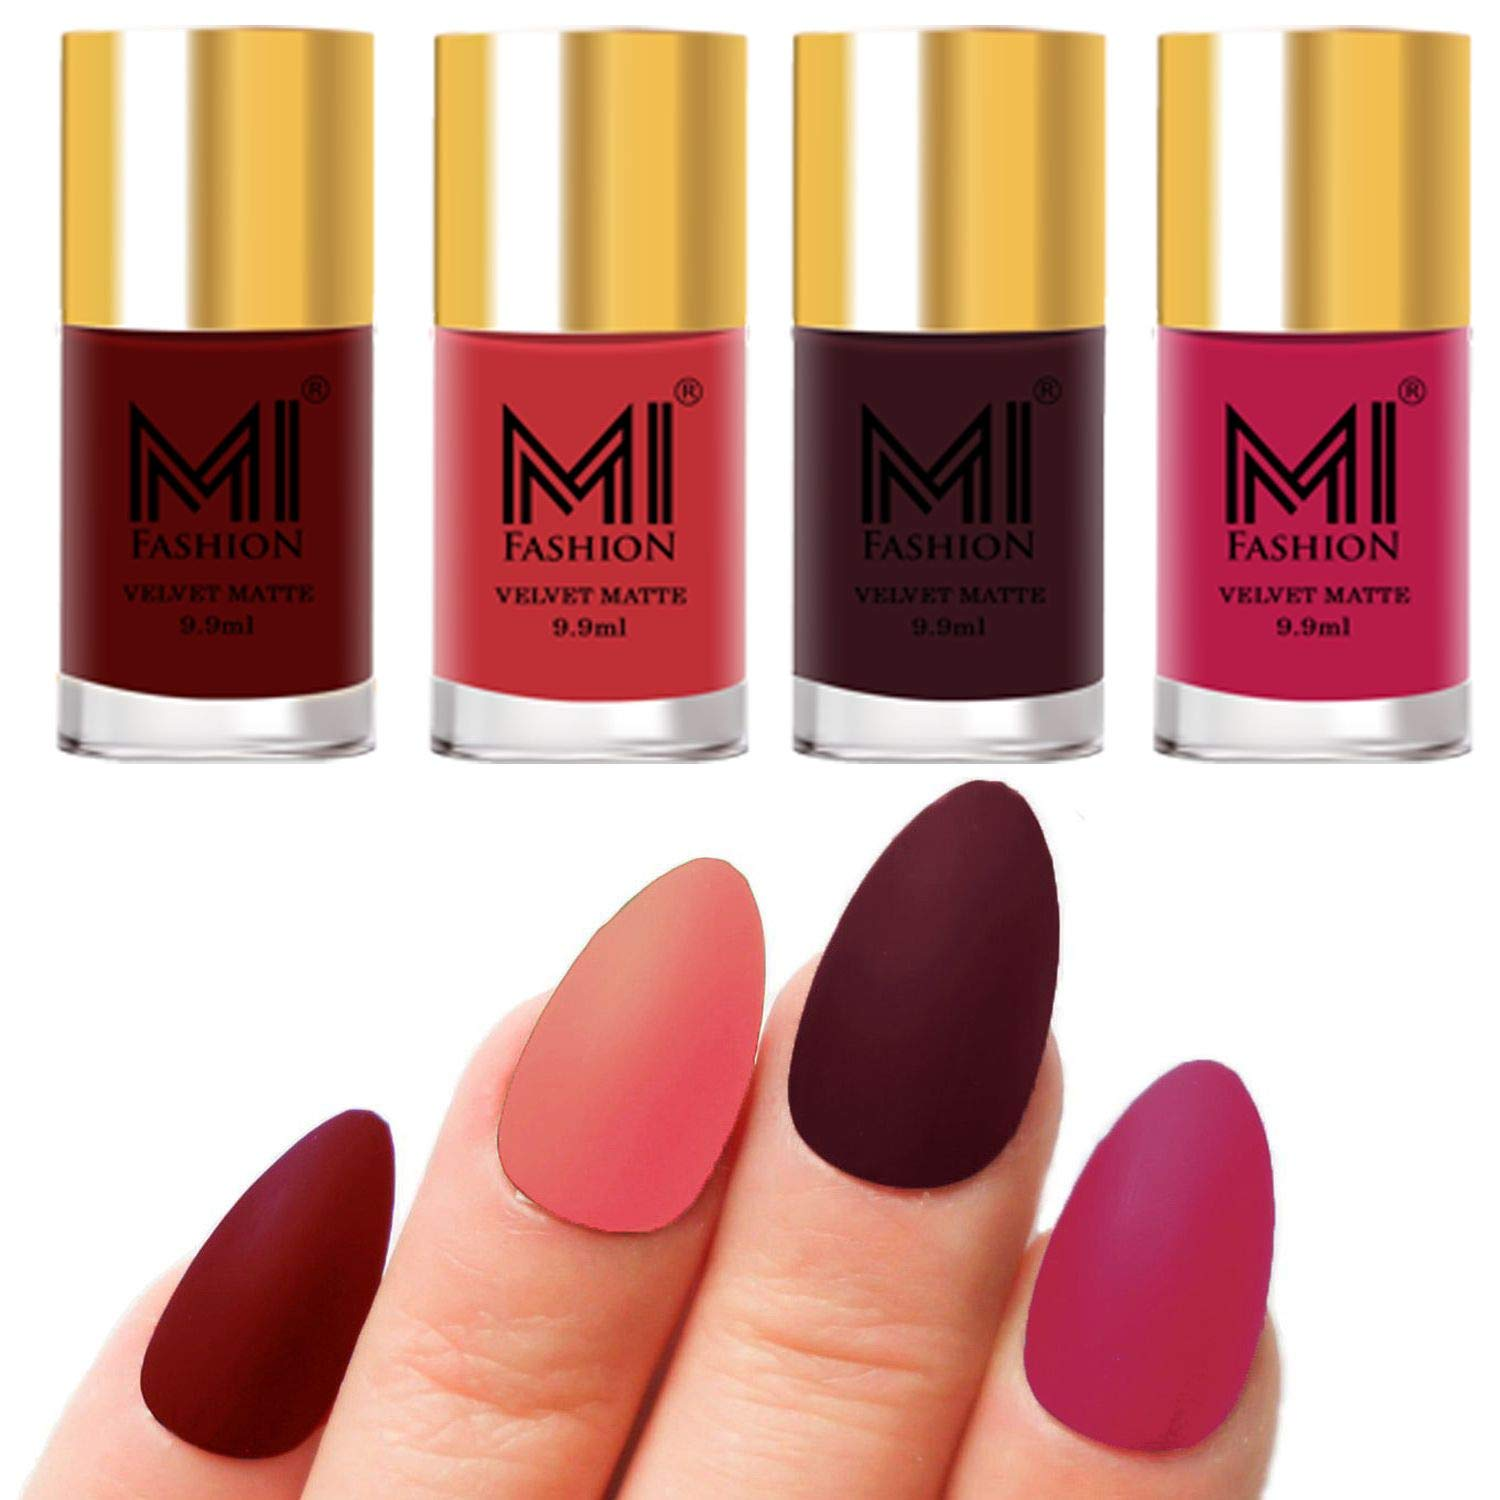 Mi Fashion Nail Paints Combo Red Light Buy Online In Israel At Desertcart